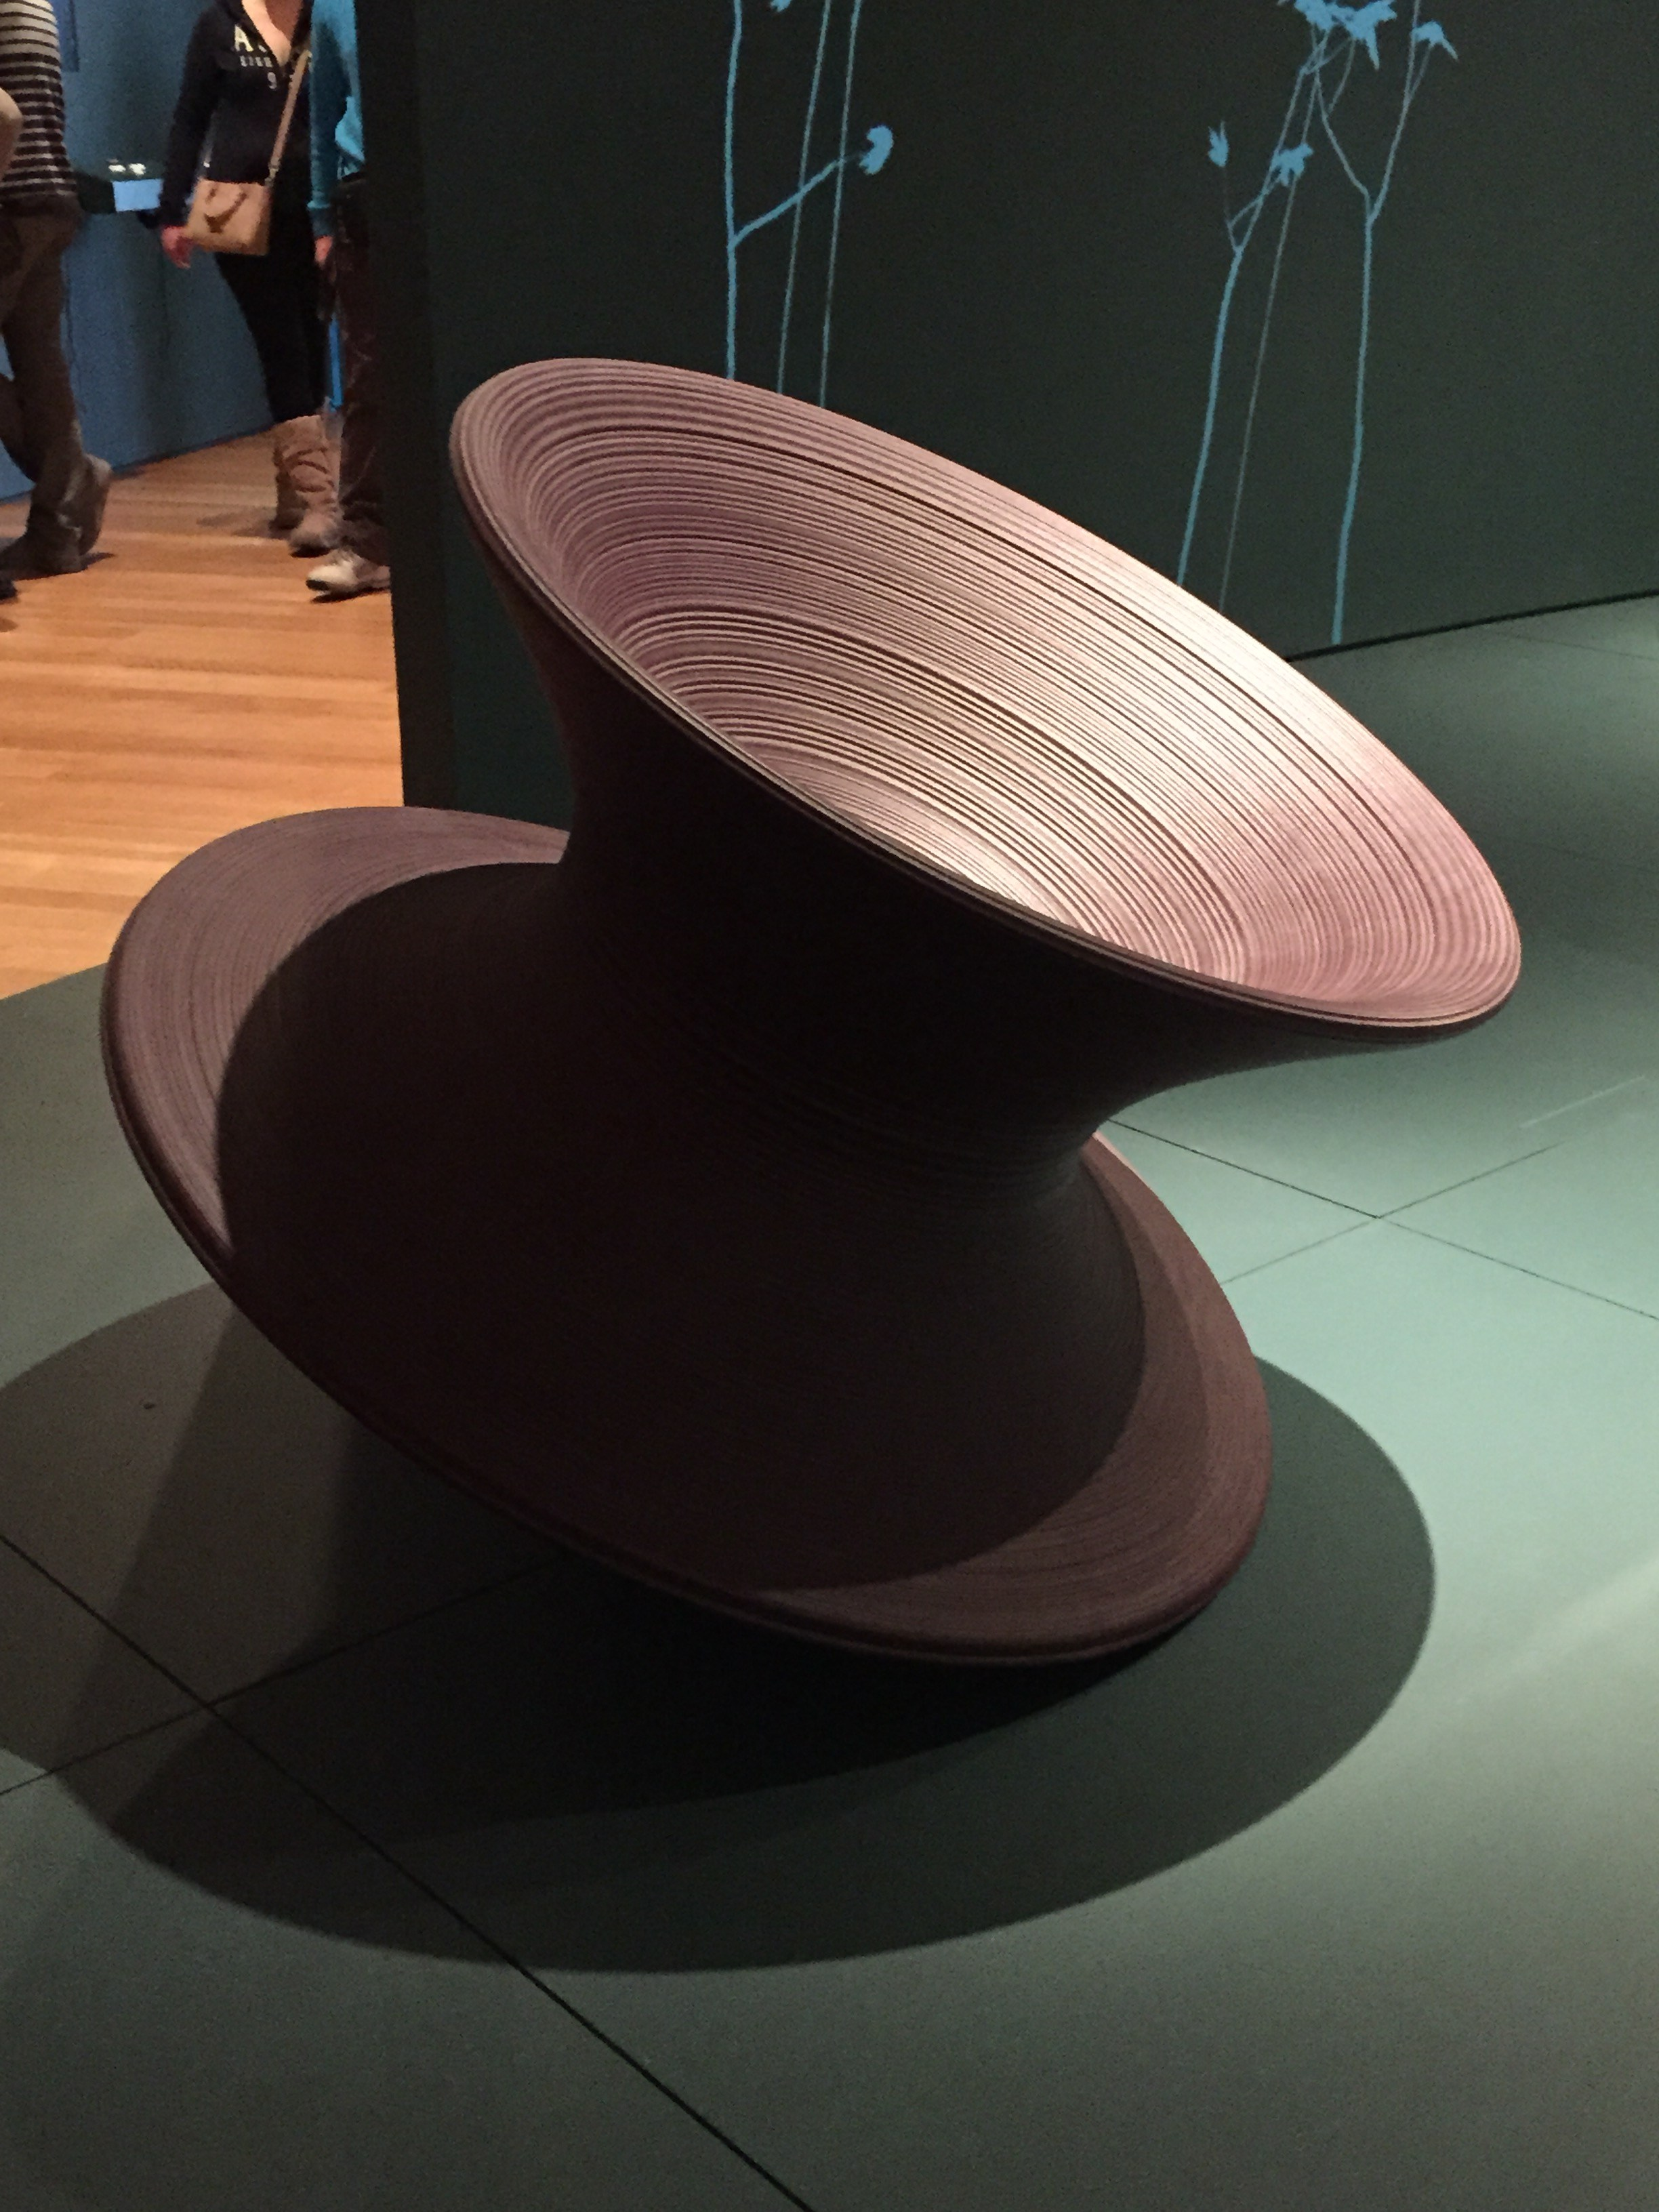 Heatherwick Chair Thomas Heatherwicks Spun Chair The Arts In New York City